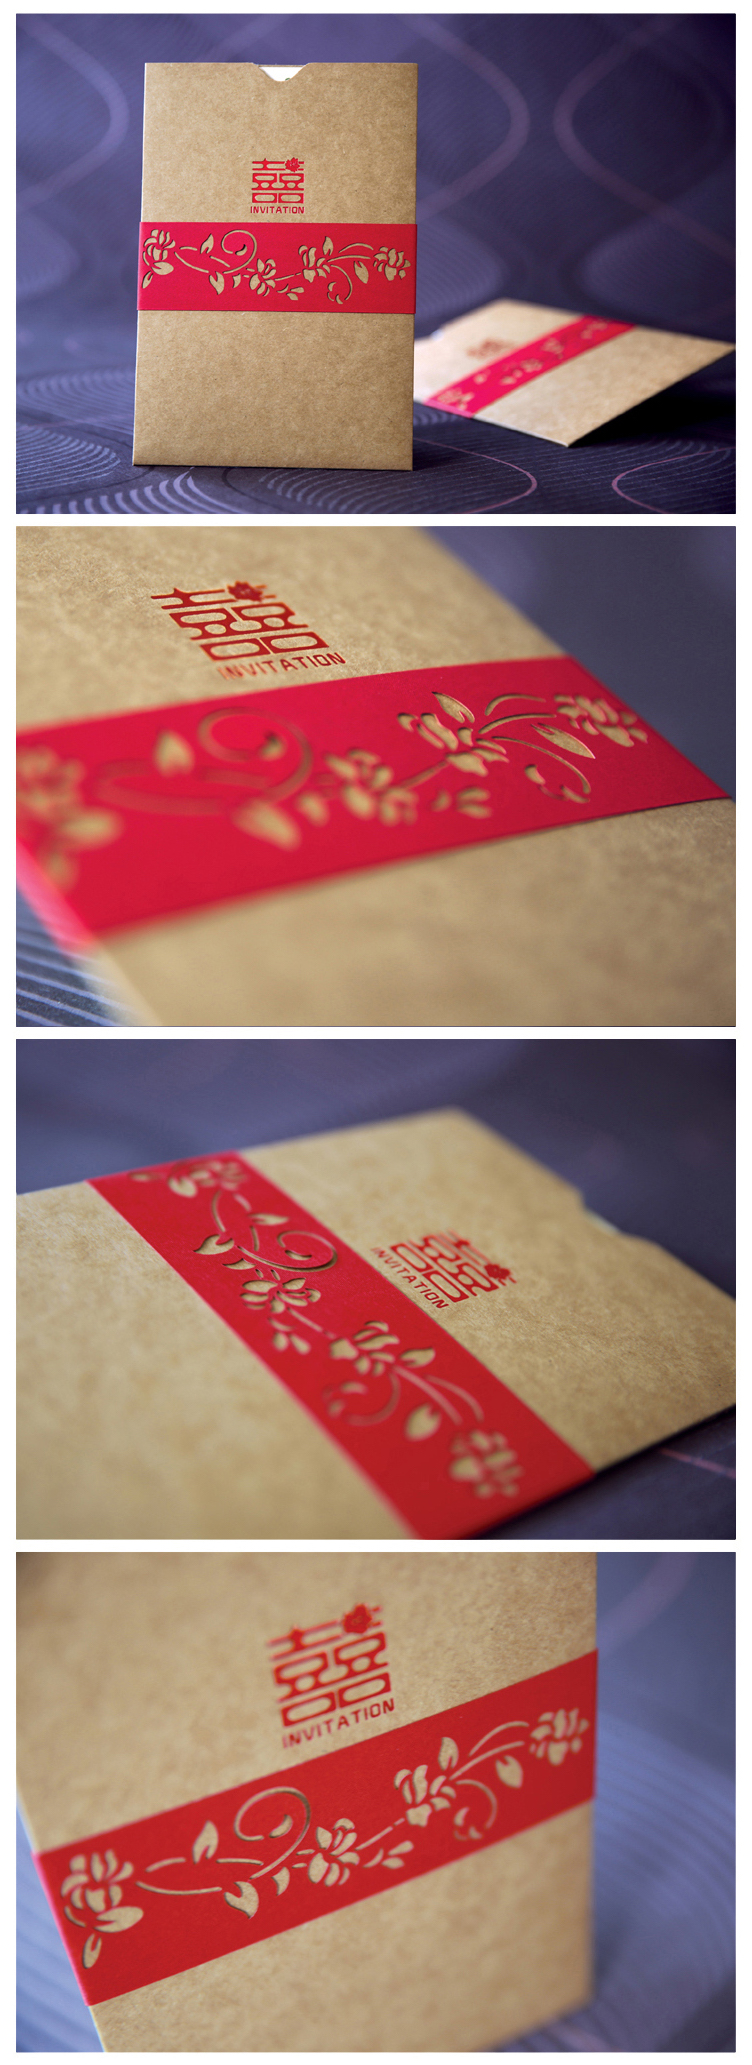 MYLoveHK - Bespoke wedding invitation and premium gifts in Hong Kong